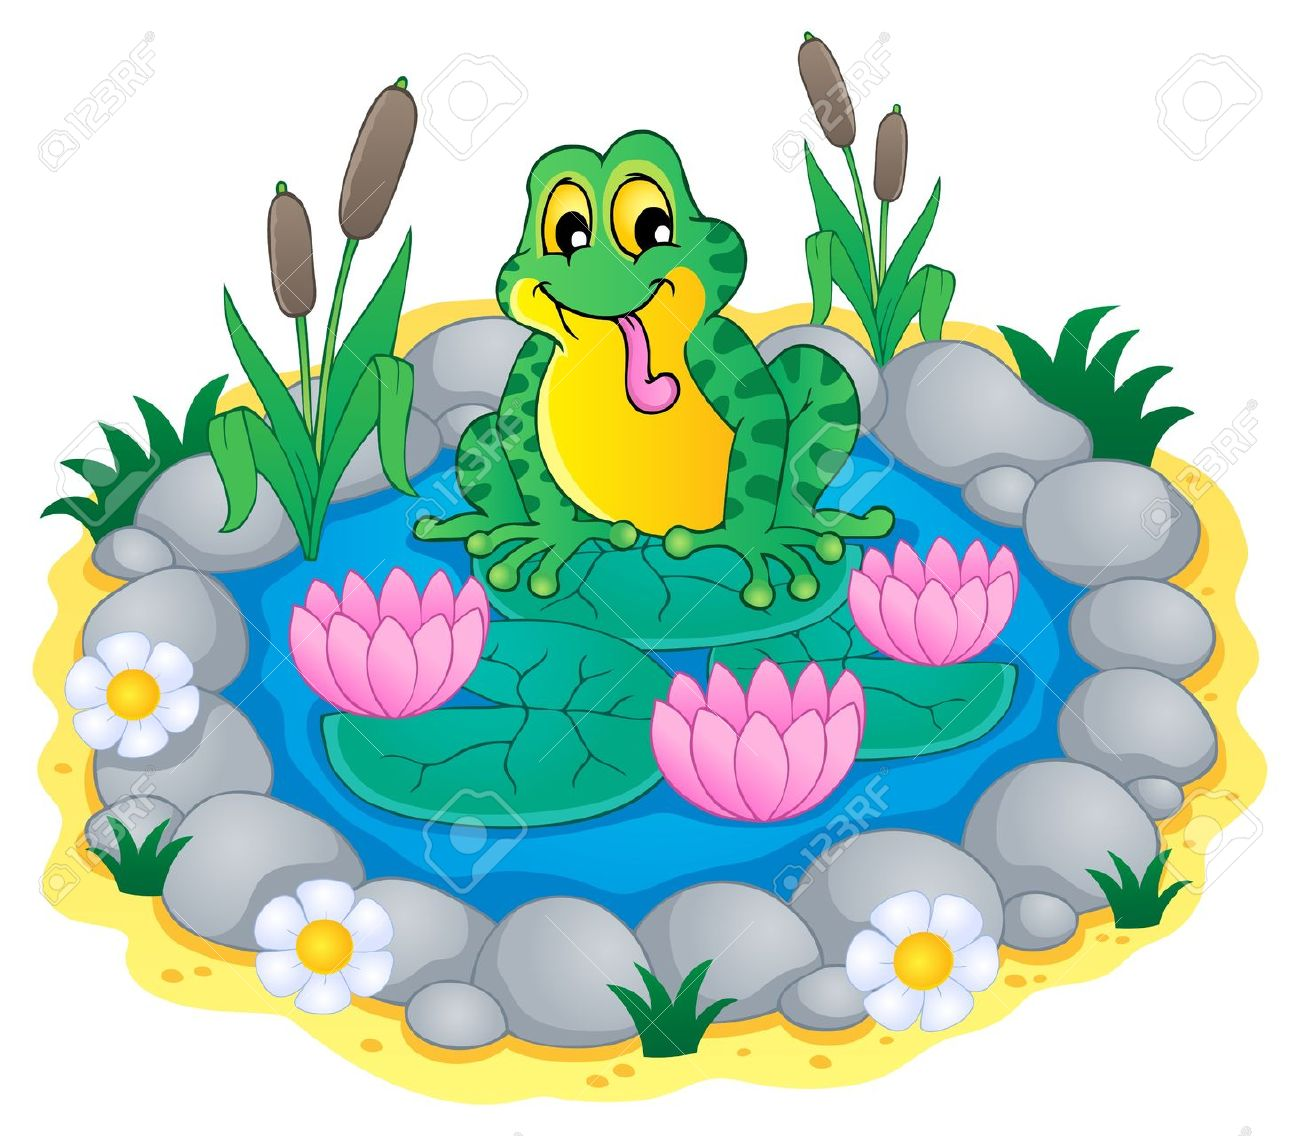 Clipart images of a pond.